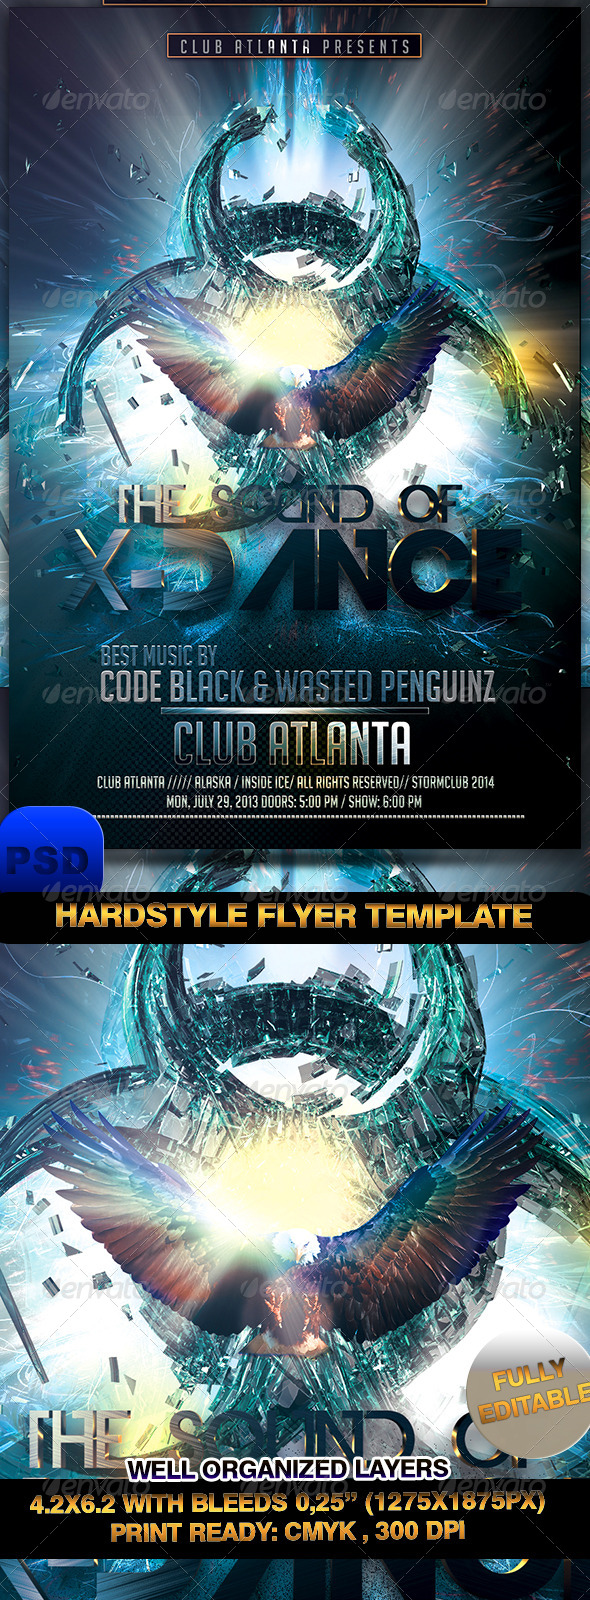 Hardstyle Flyer Template - Events Flyers